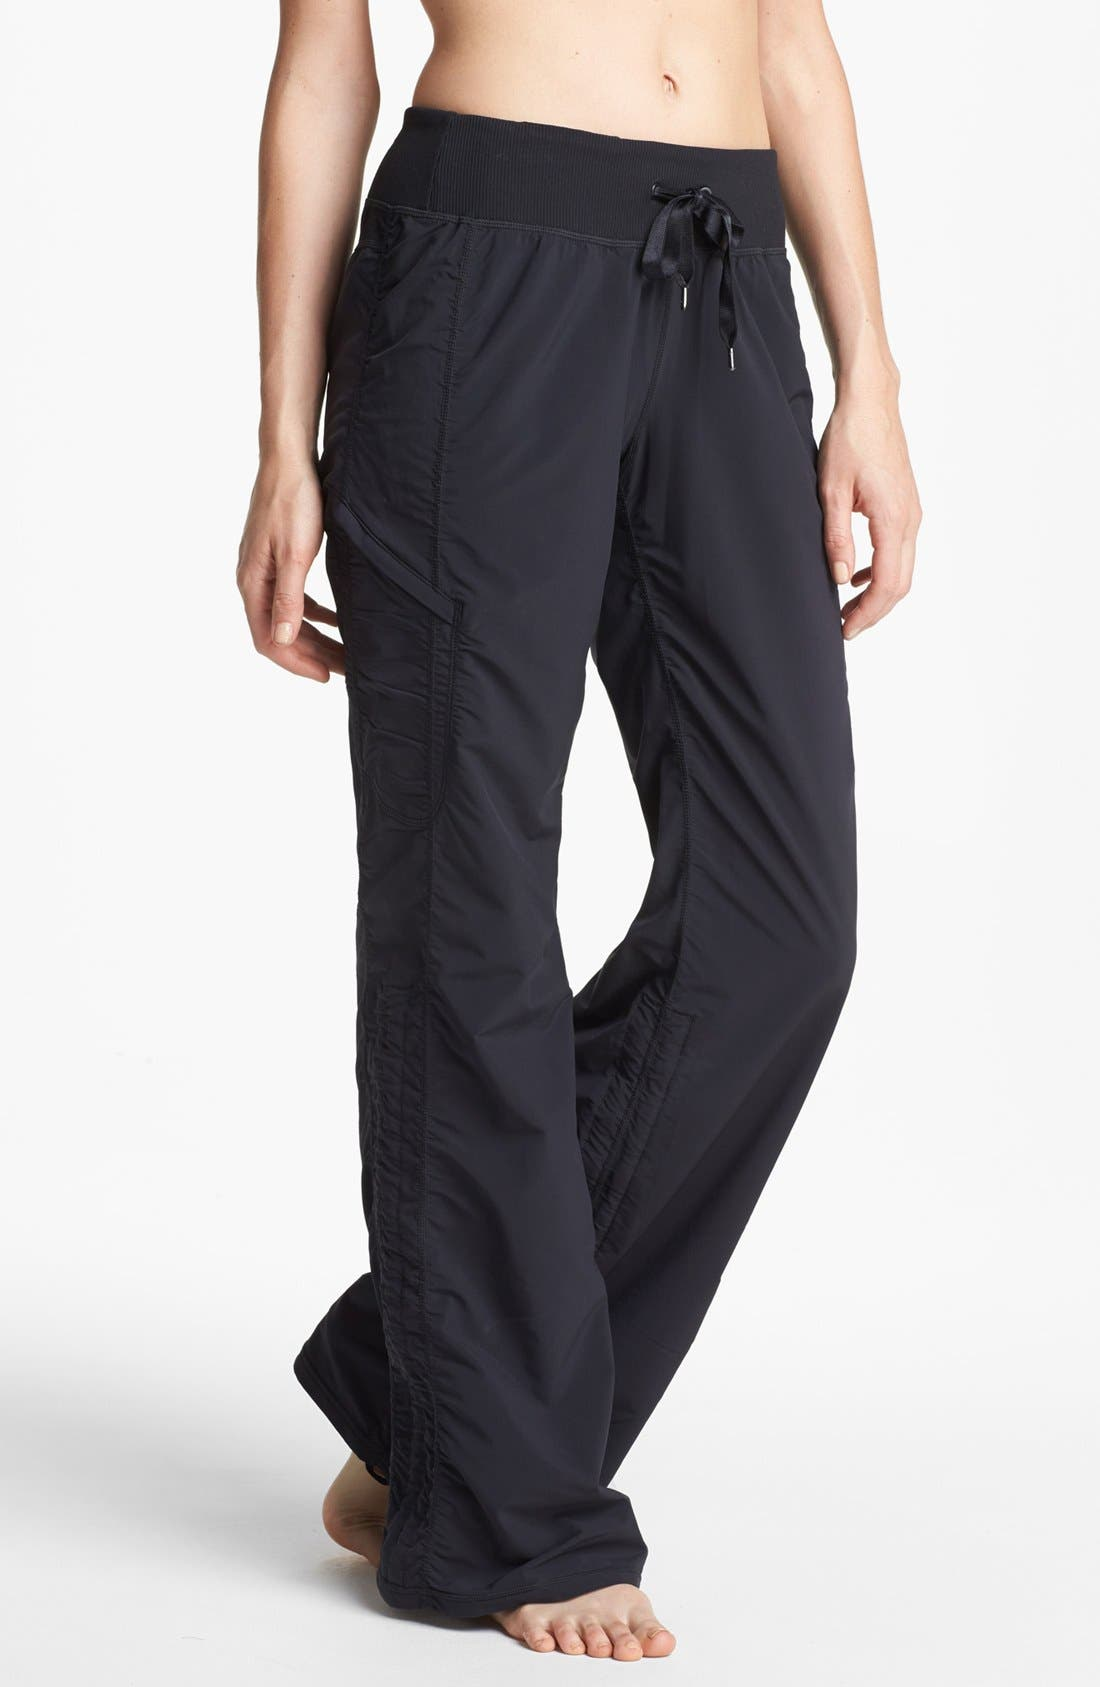 Alternate Image 1 Selected - Zella 'Move' Pants